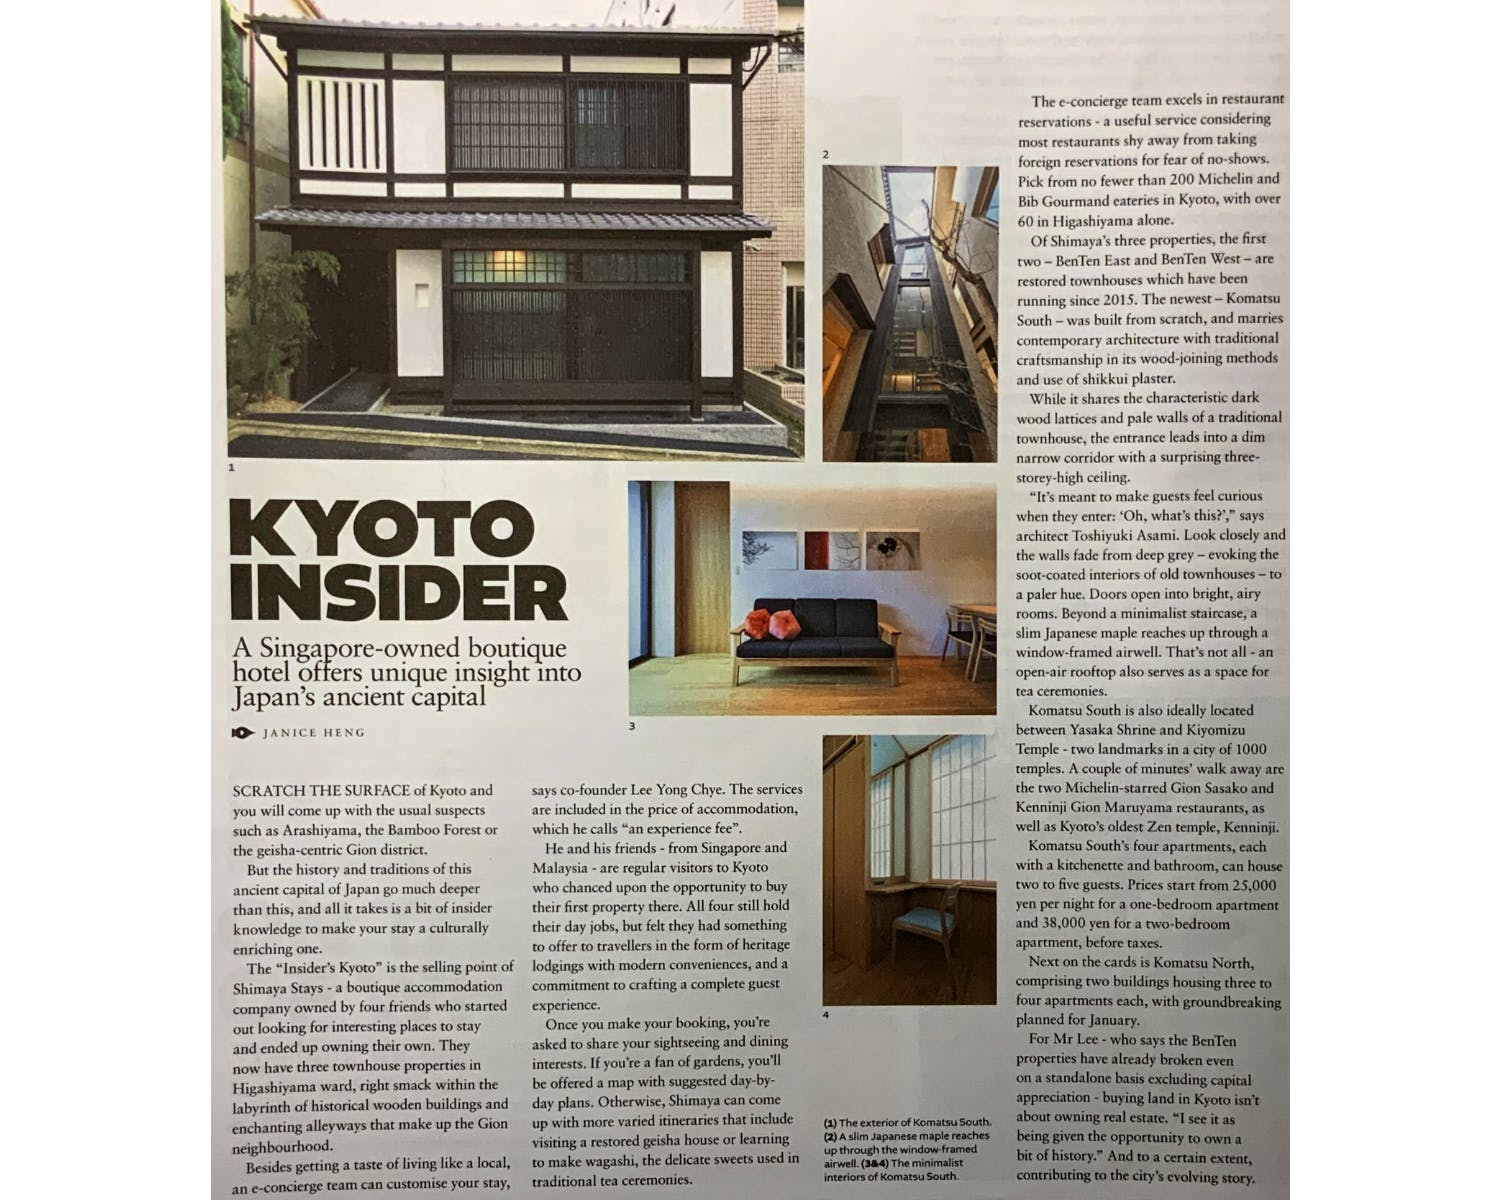 Komatsu Residences and Shimaya Stays' Insiders' Kyoto offering featured in the Singapore Business Times